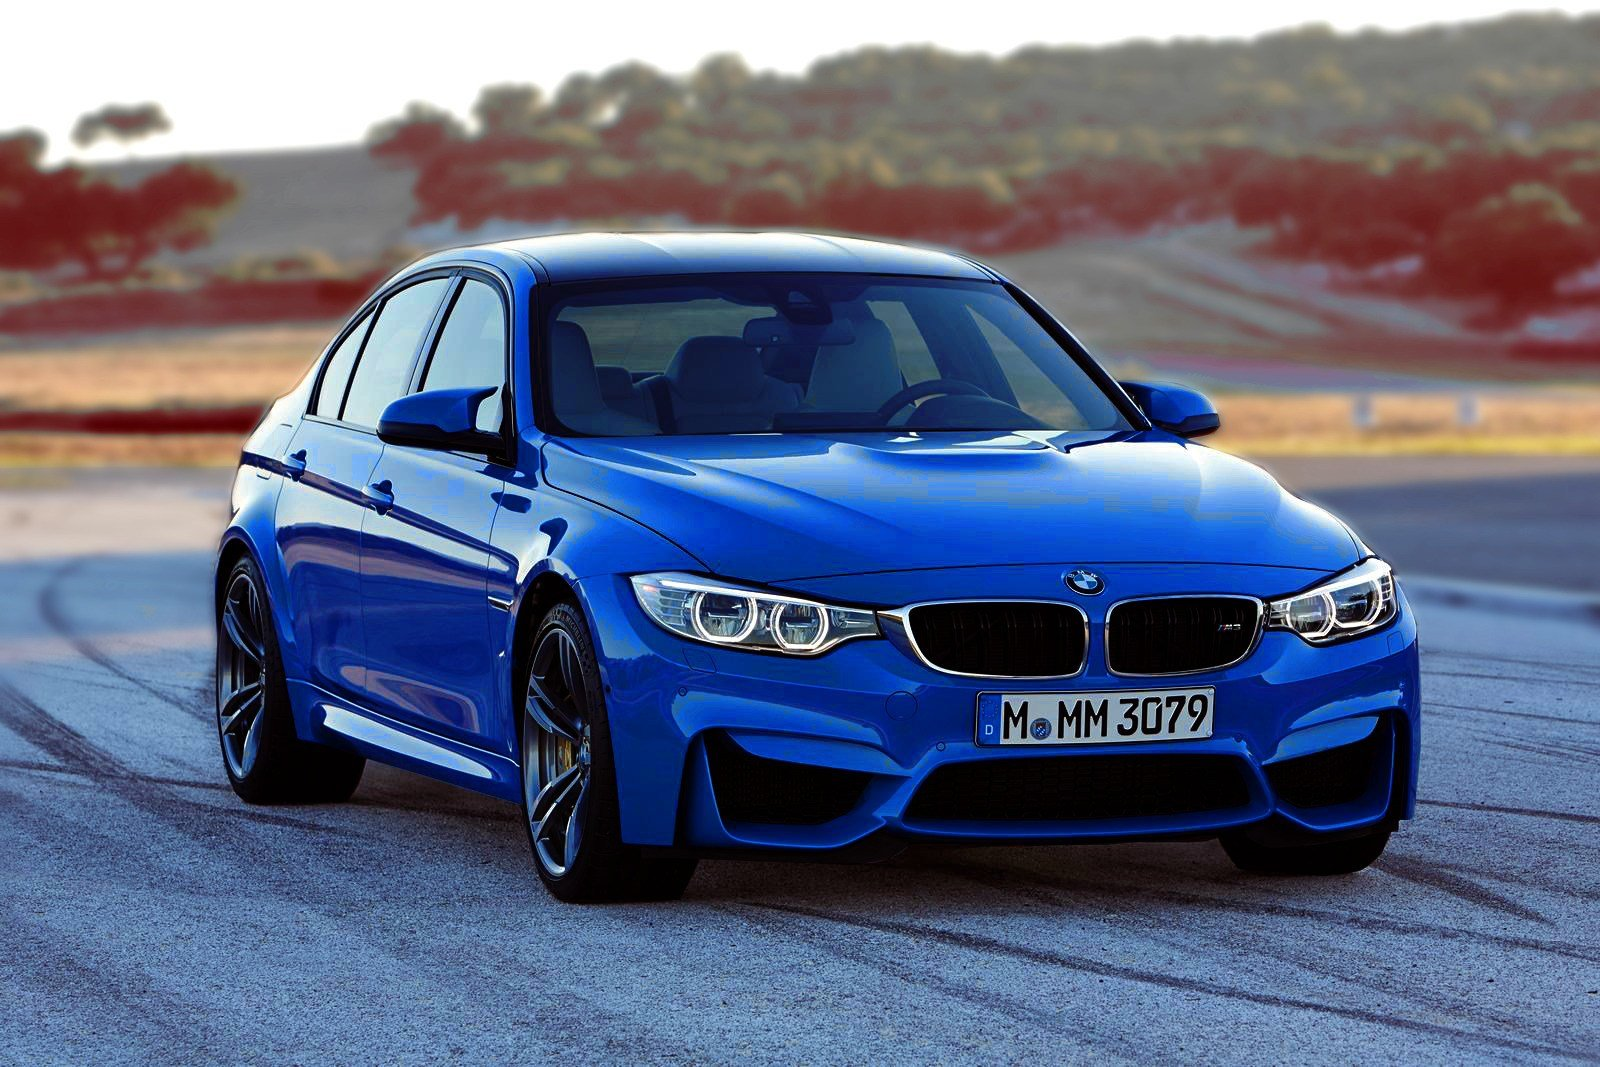 Latest Bmw M3 Bmw Car Blue Cars Wallpapers Hd Desktop And Free Download